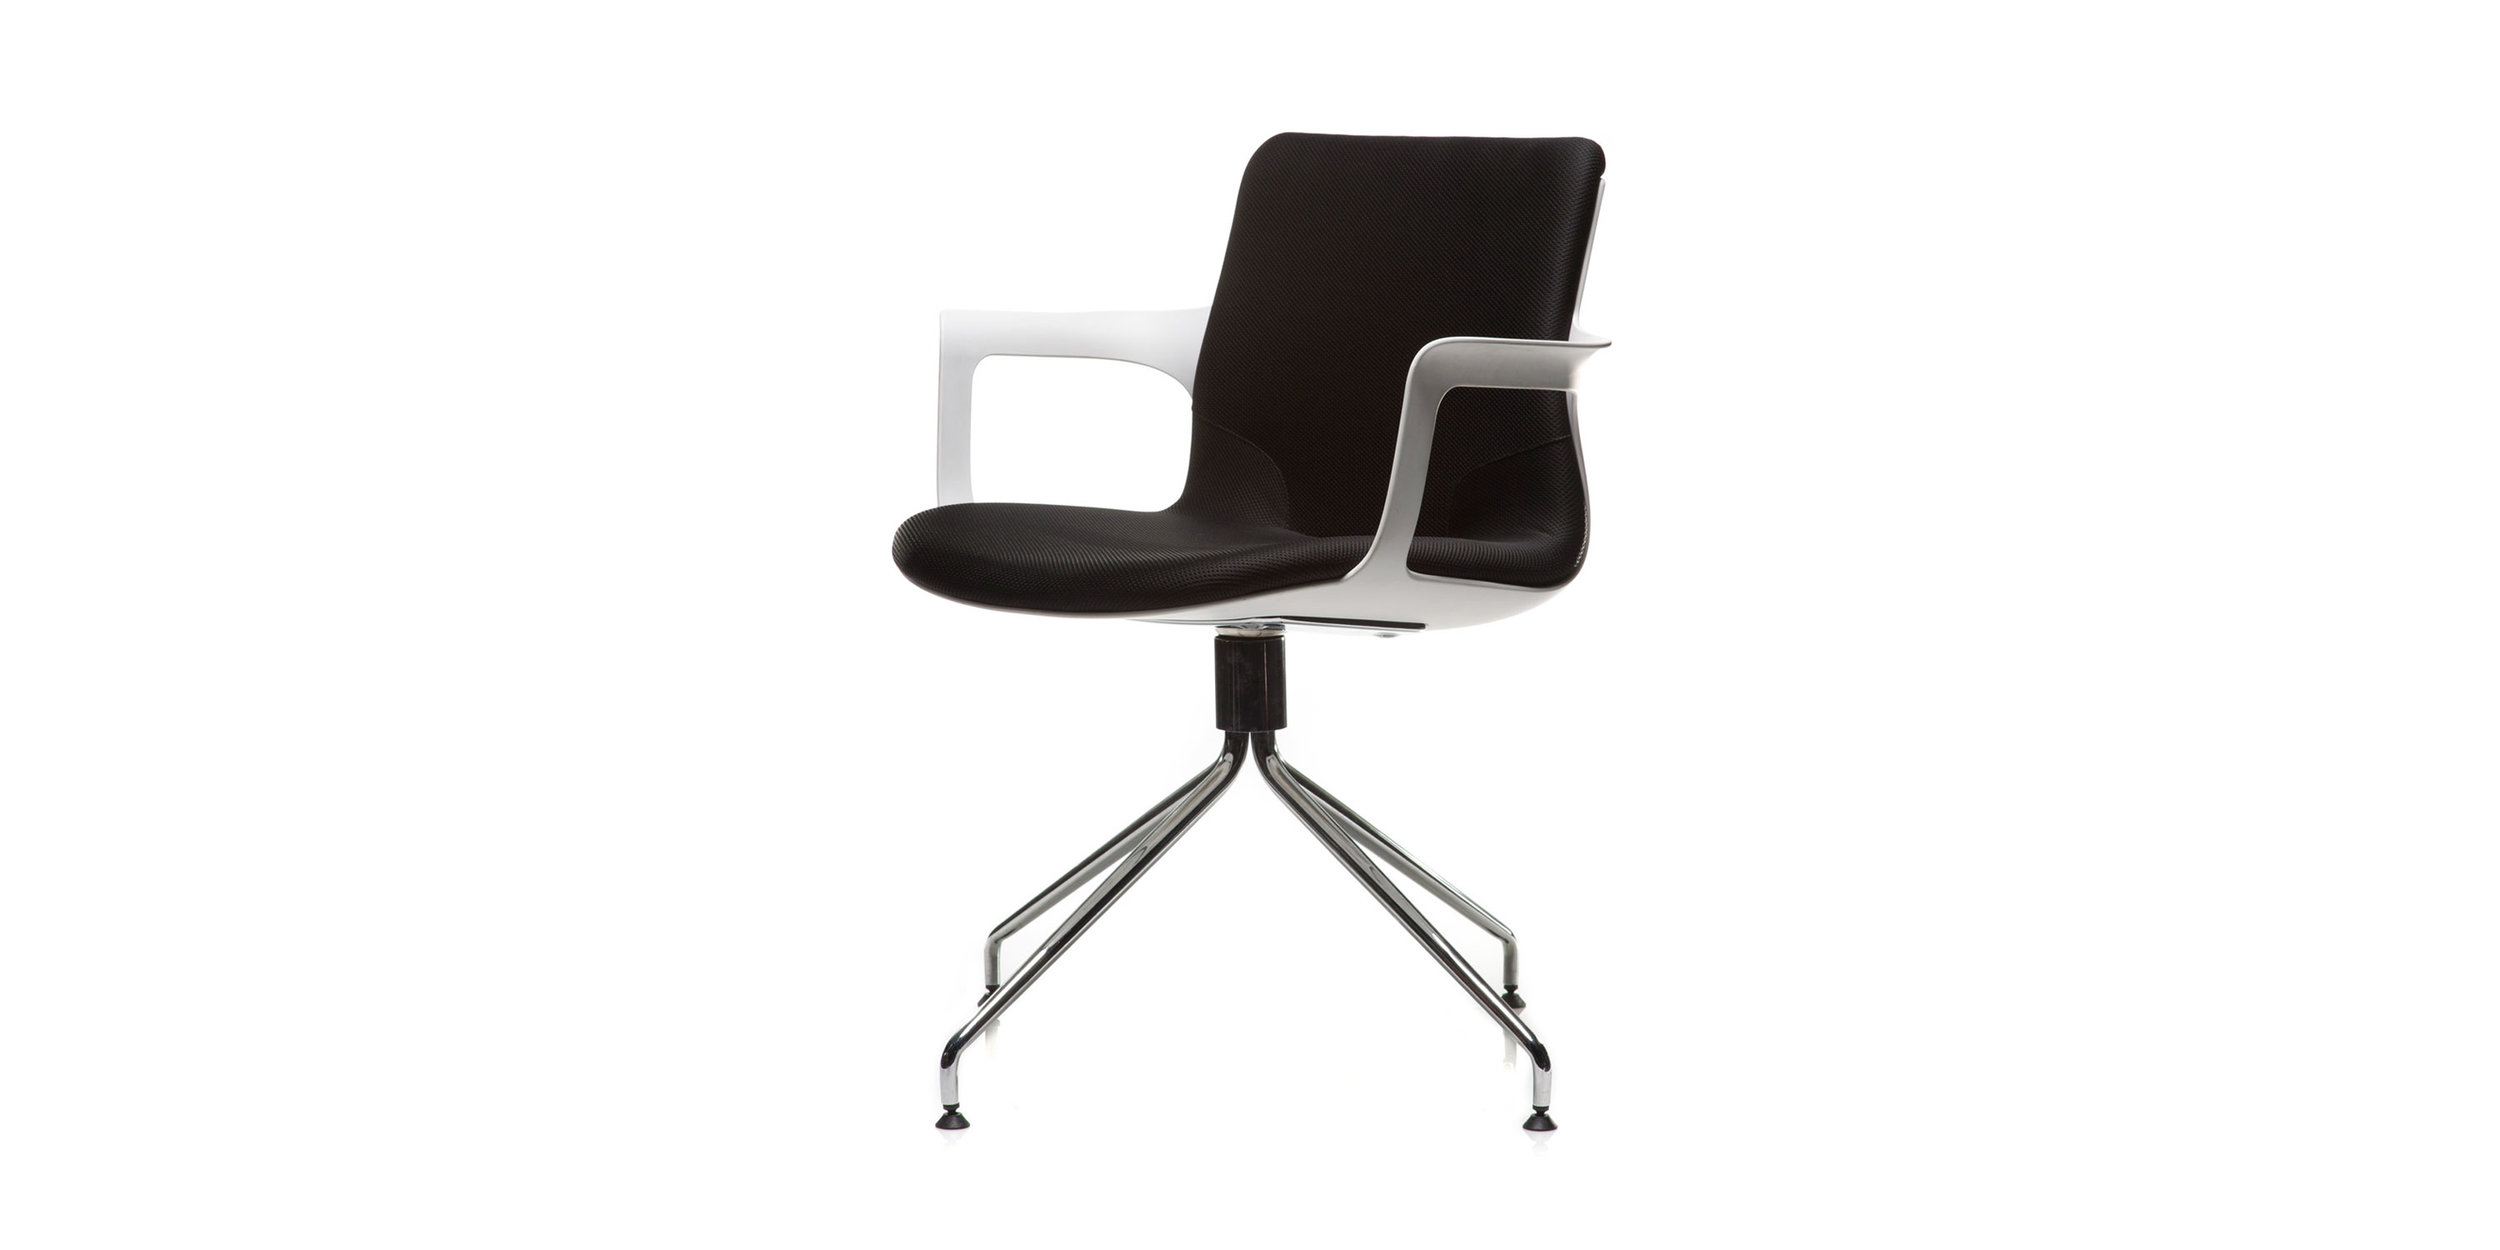 Visitor/Training - Our range of visitor and training chairs are suitable to most workplace environments and usage requirements, and have the added confidence of a five-year warranty. Hard-wearing and long-lasting, these chairs come in a range of fabrics and colours.